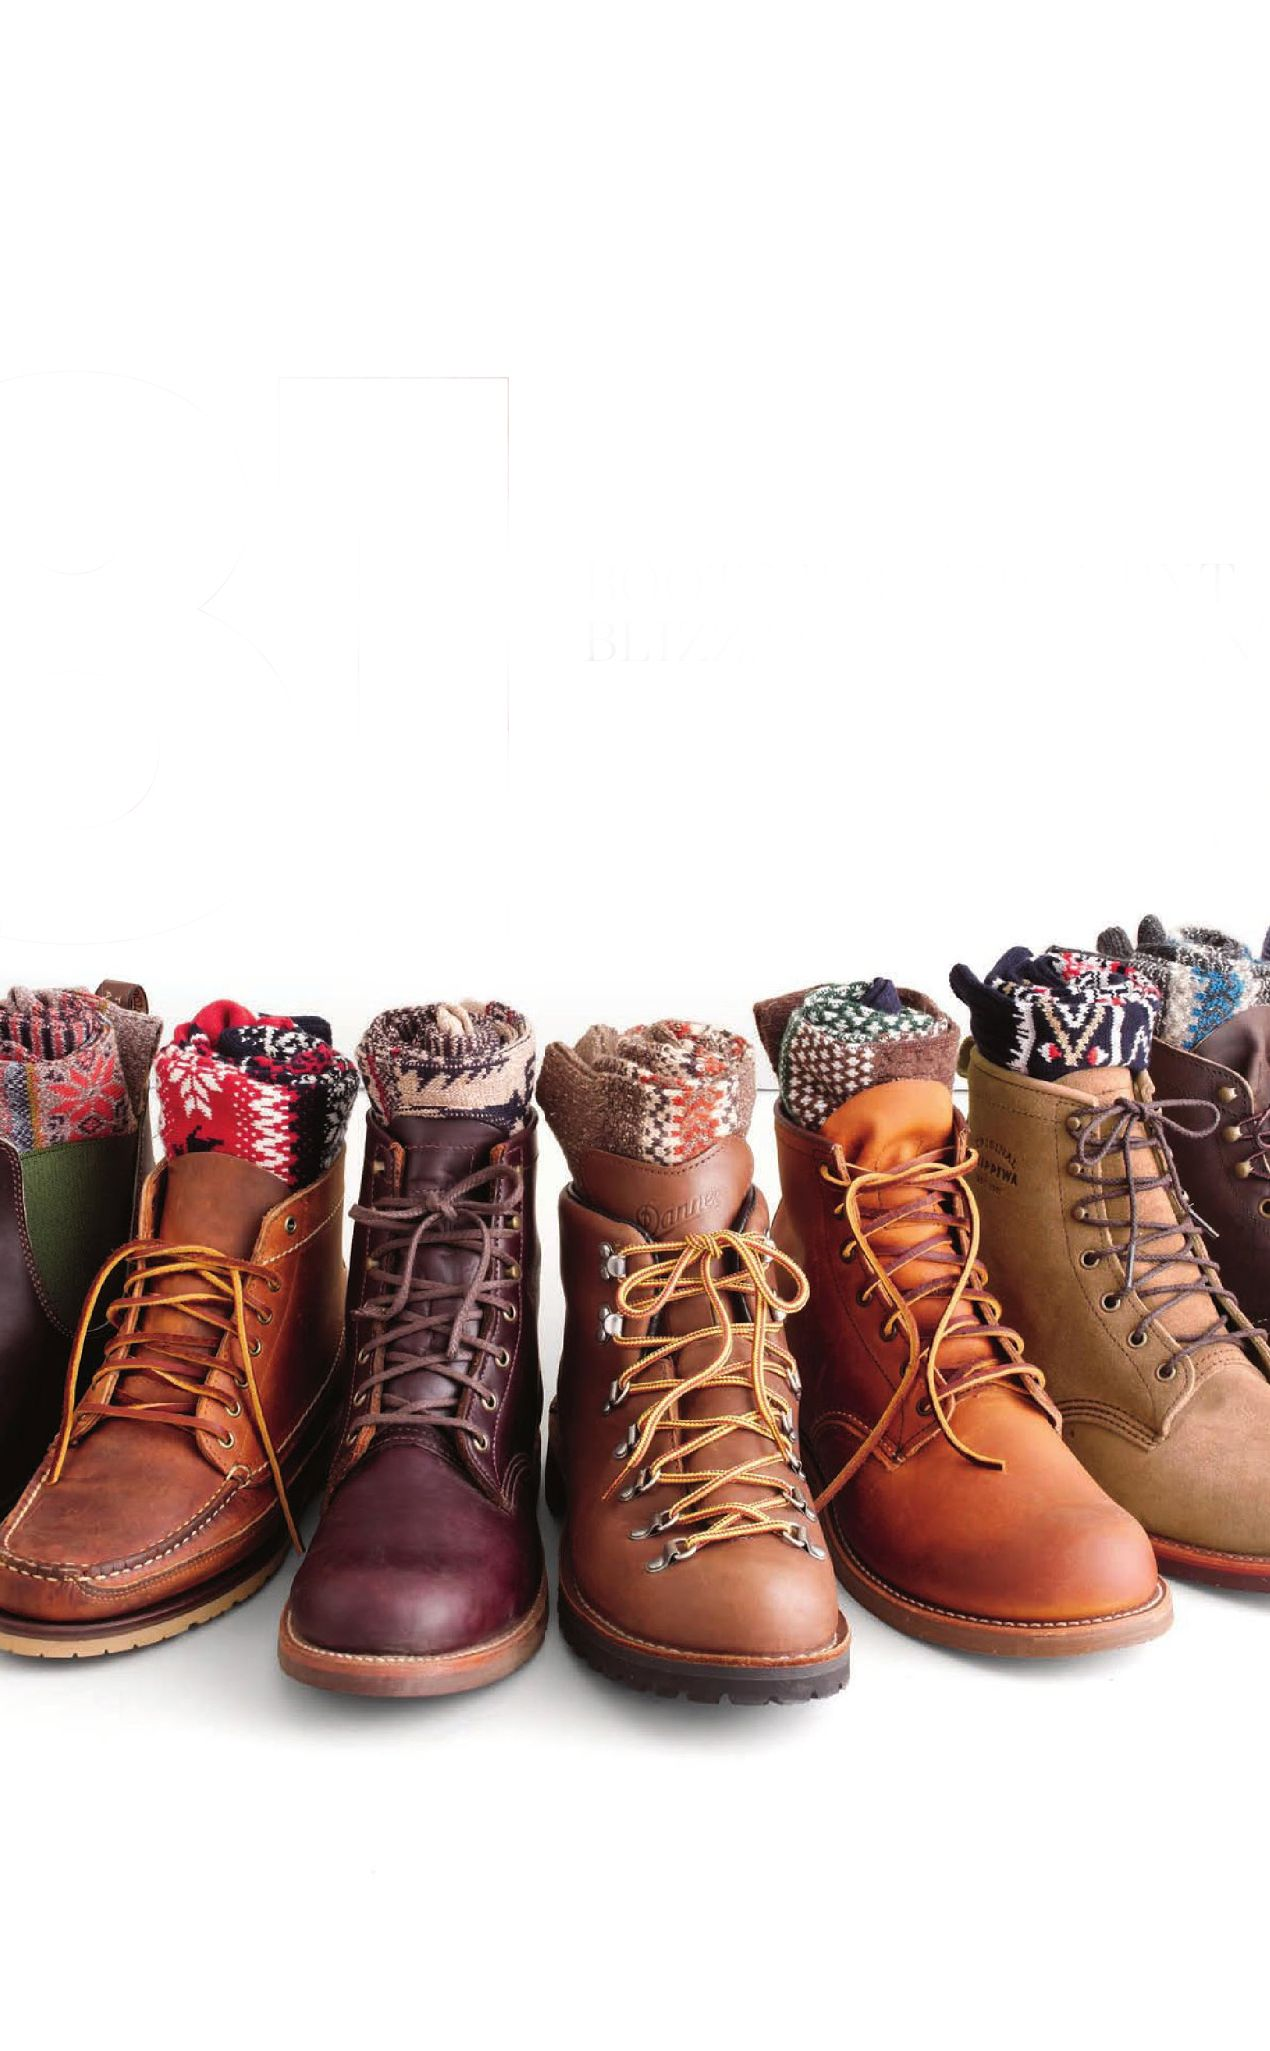 Rugged boots. Perfect with skinny jeans! Women s fall winter fashion  clothing footwear shoes e68ebfdc30